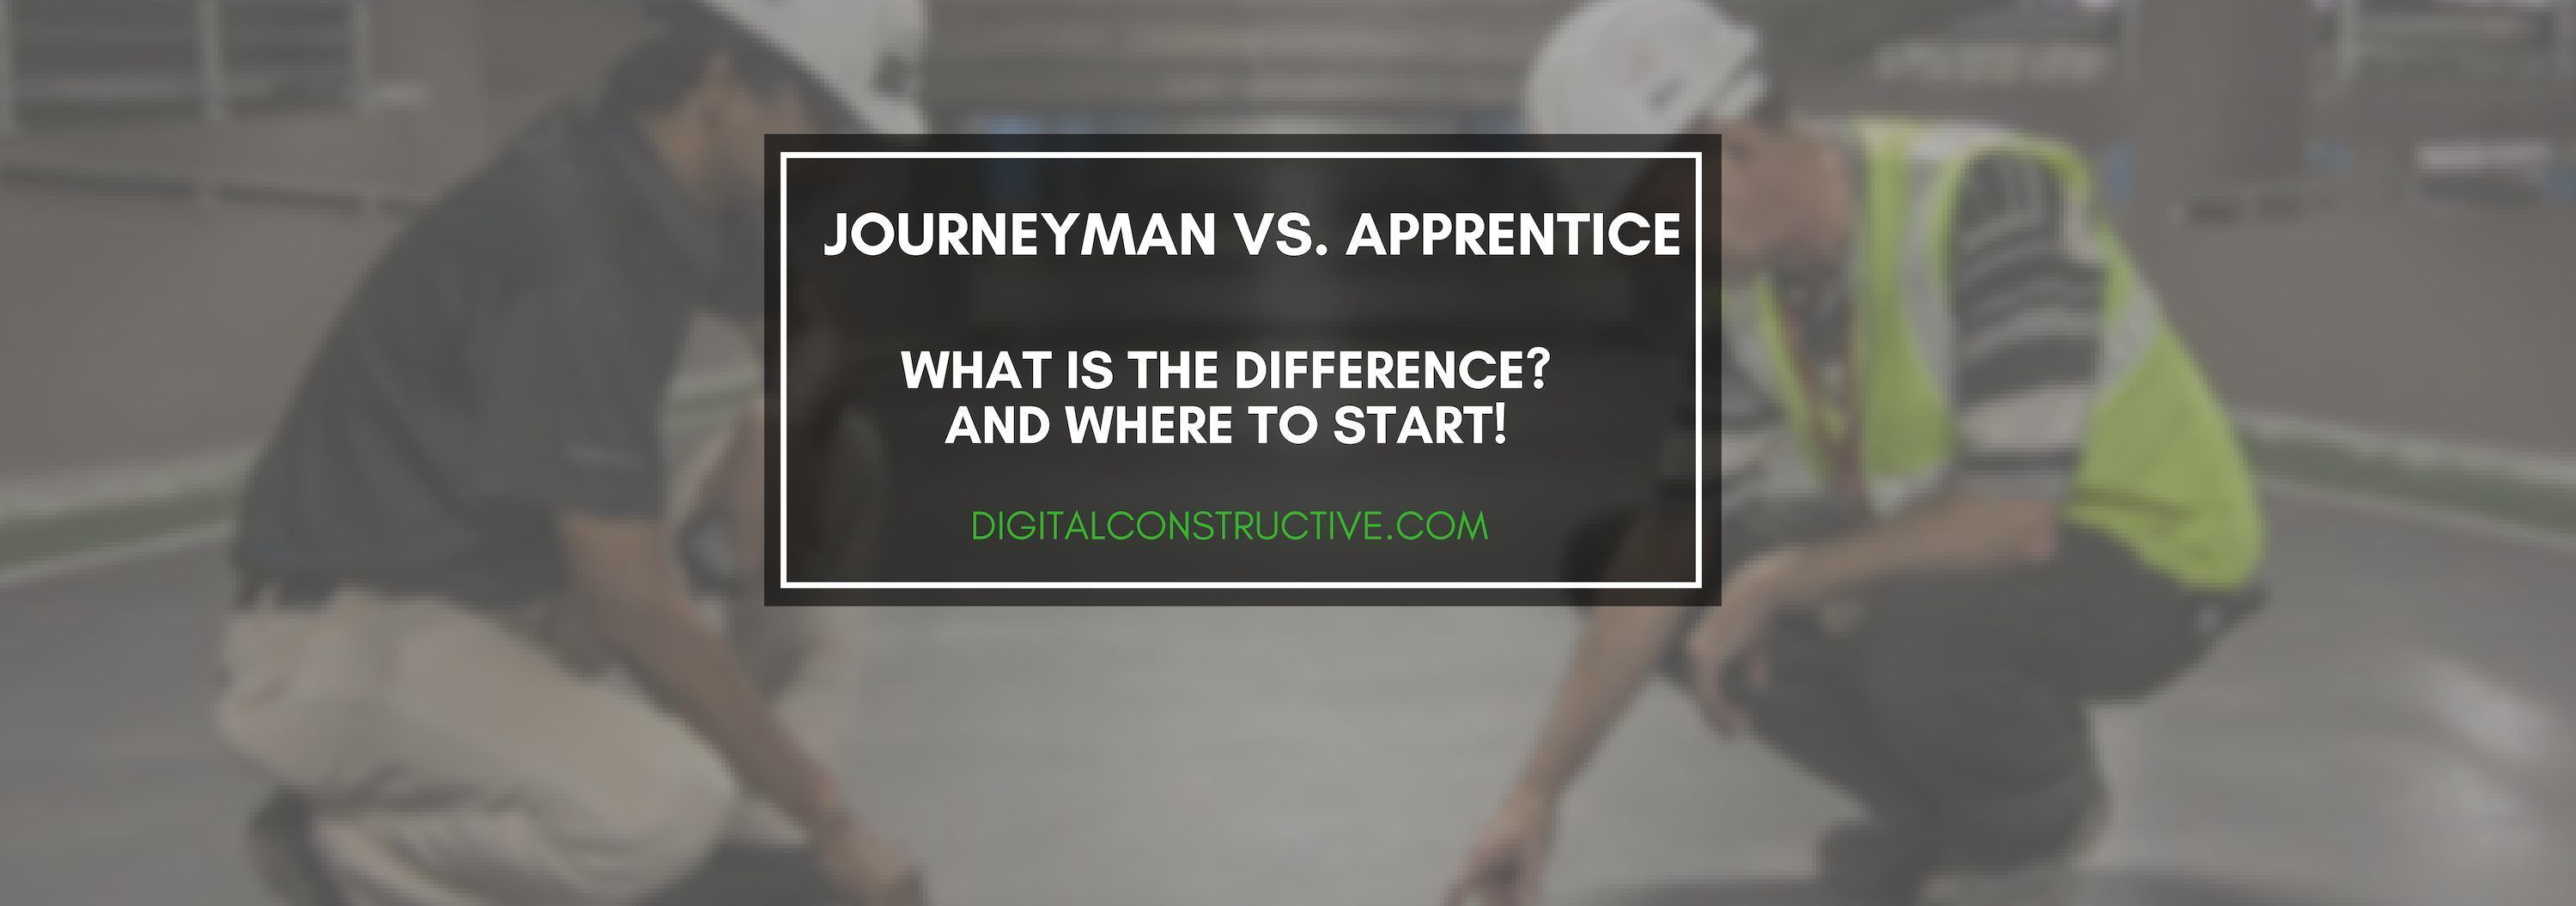 image shows two construction workers looking down at something. blog post covers the difference between an apprentice and a journeyman